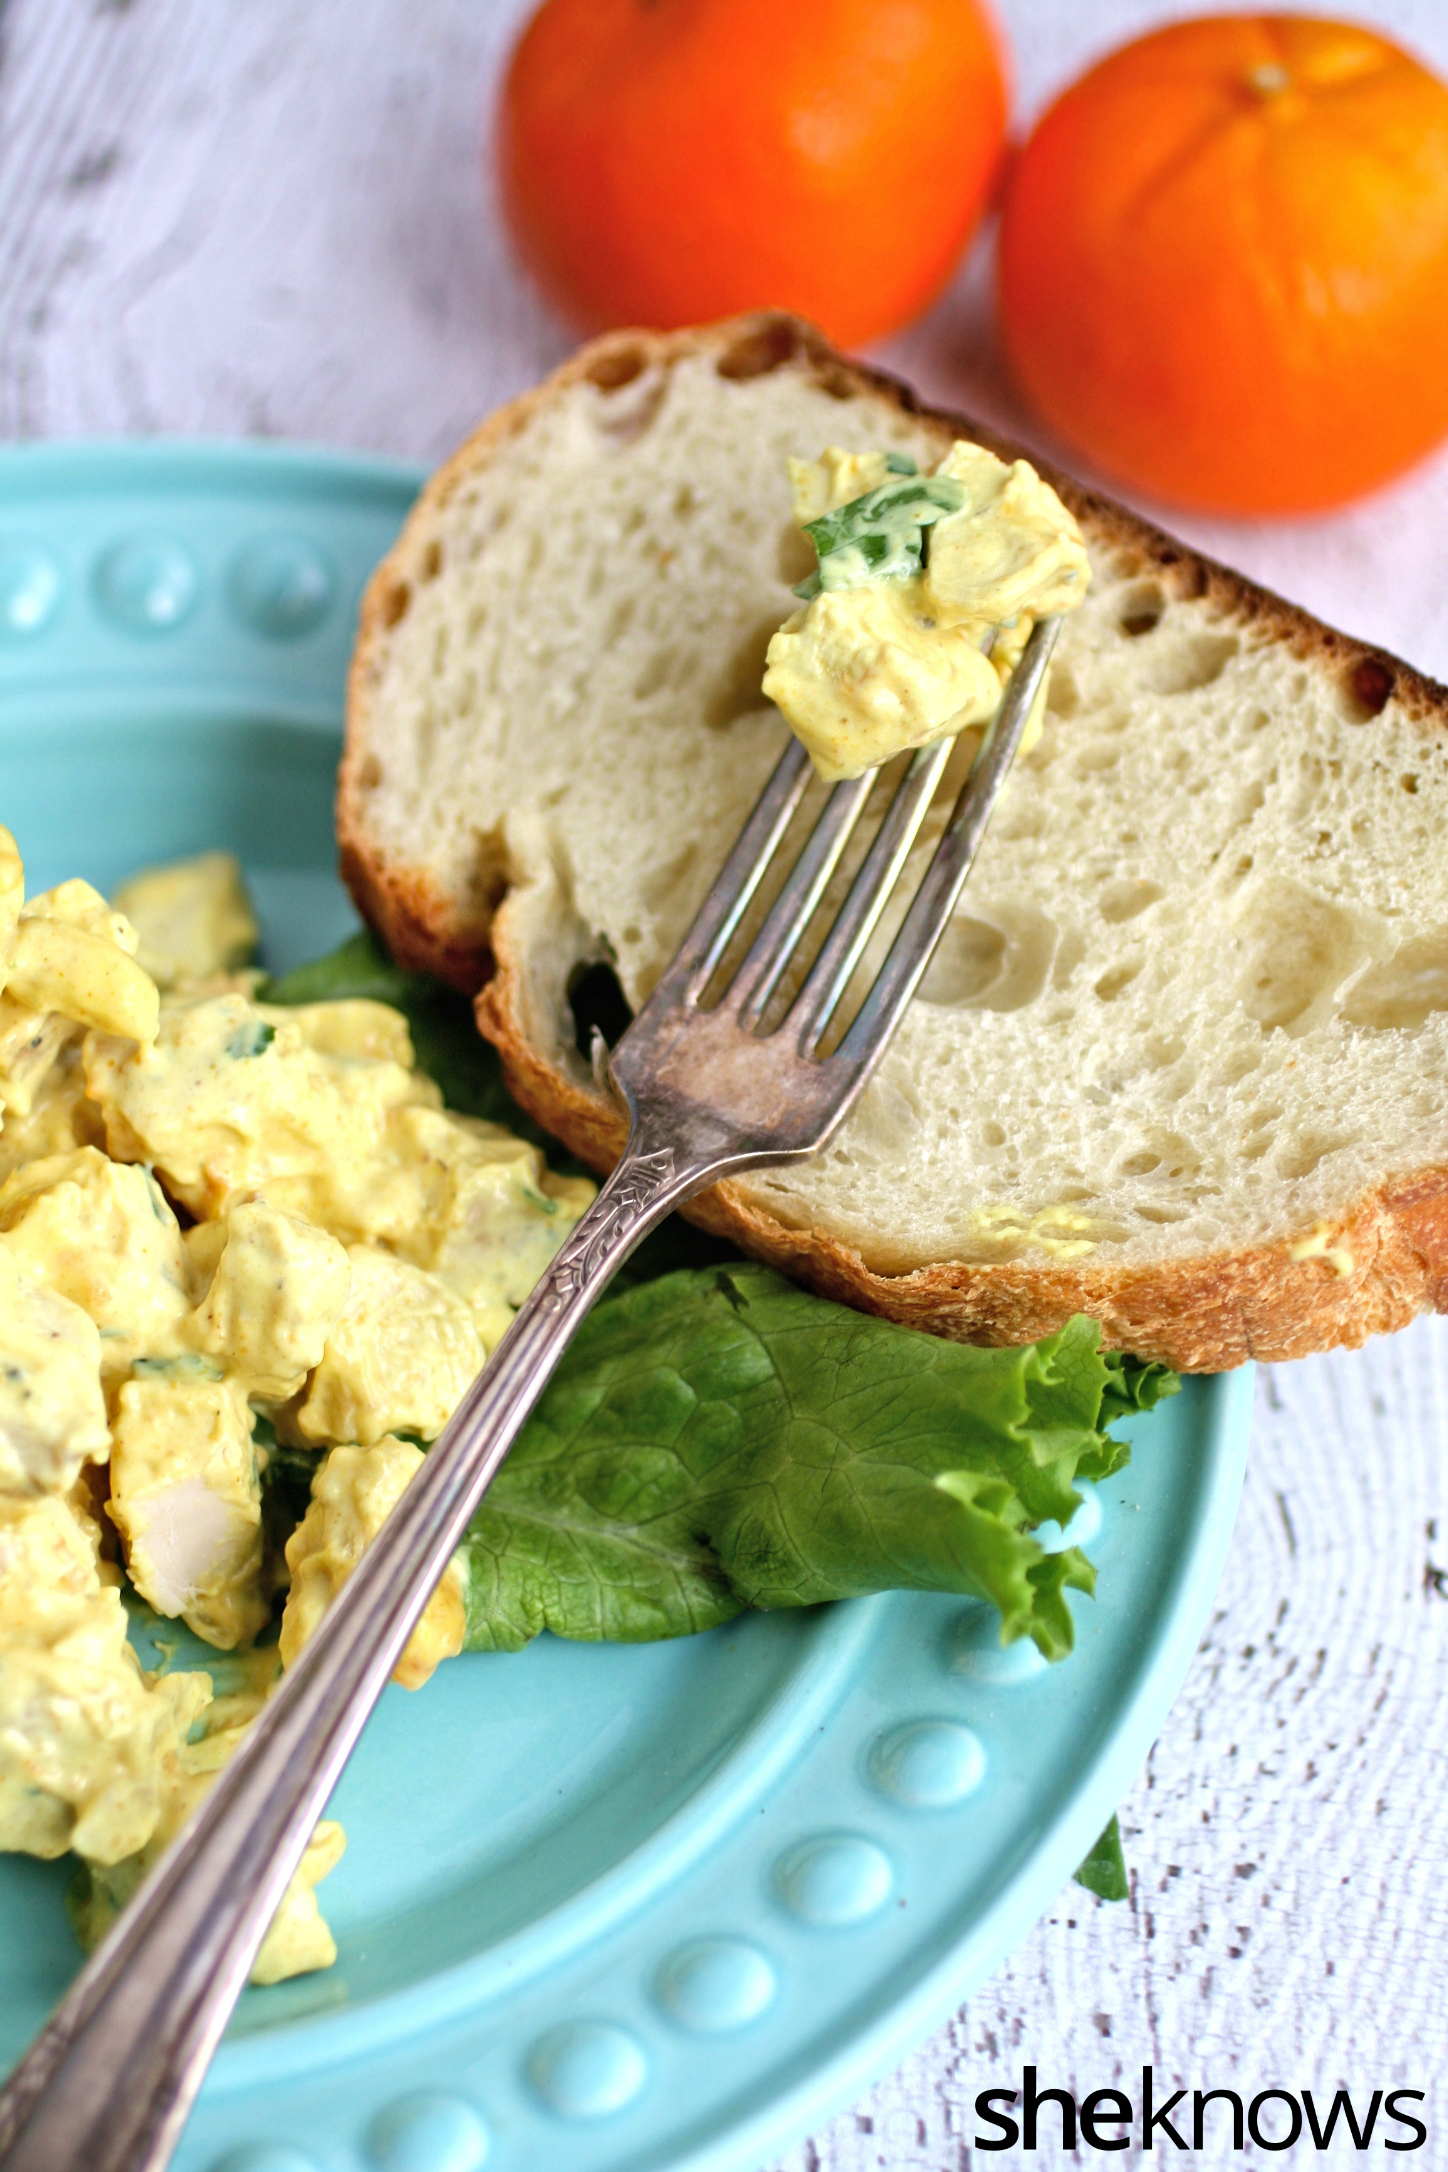 Serve this special dish: coronation chicken salad with toasted almonds